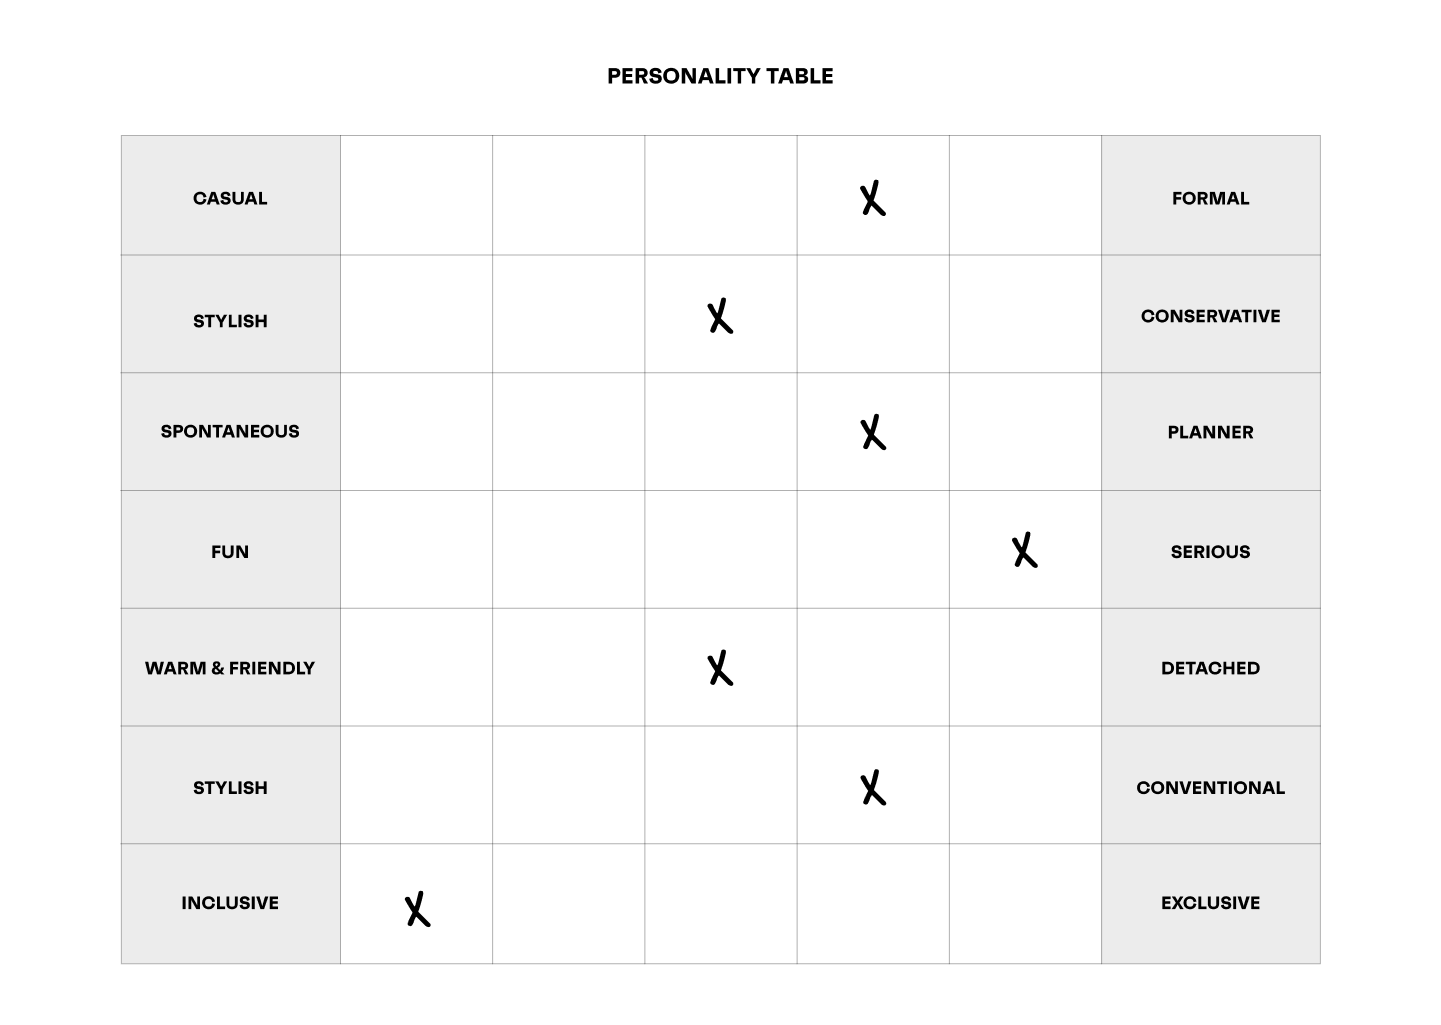 The personality table Iused to shape Hunger No More's personality.